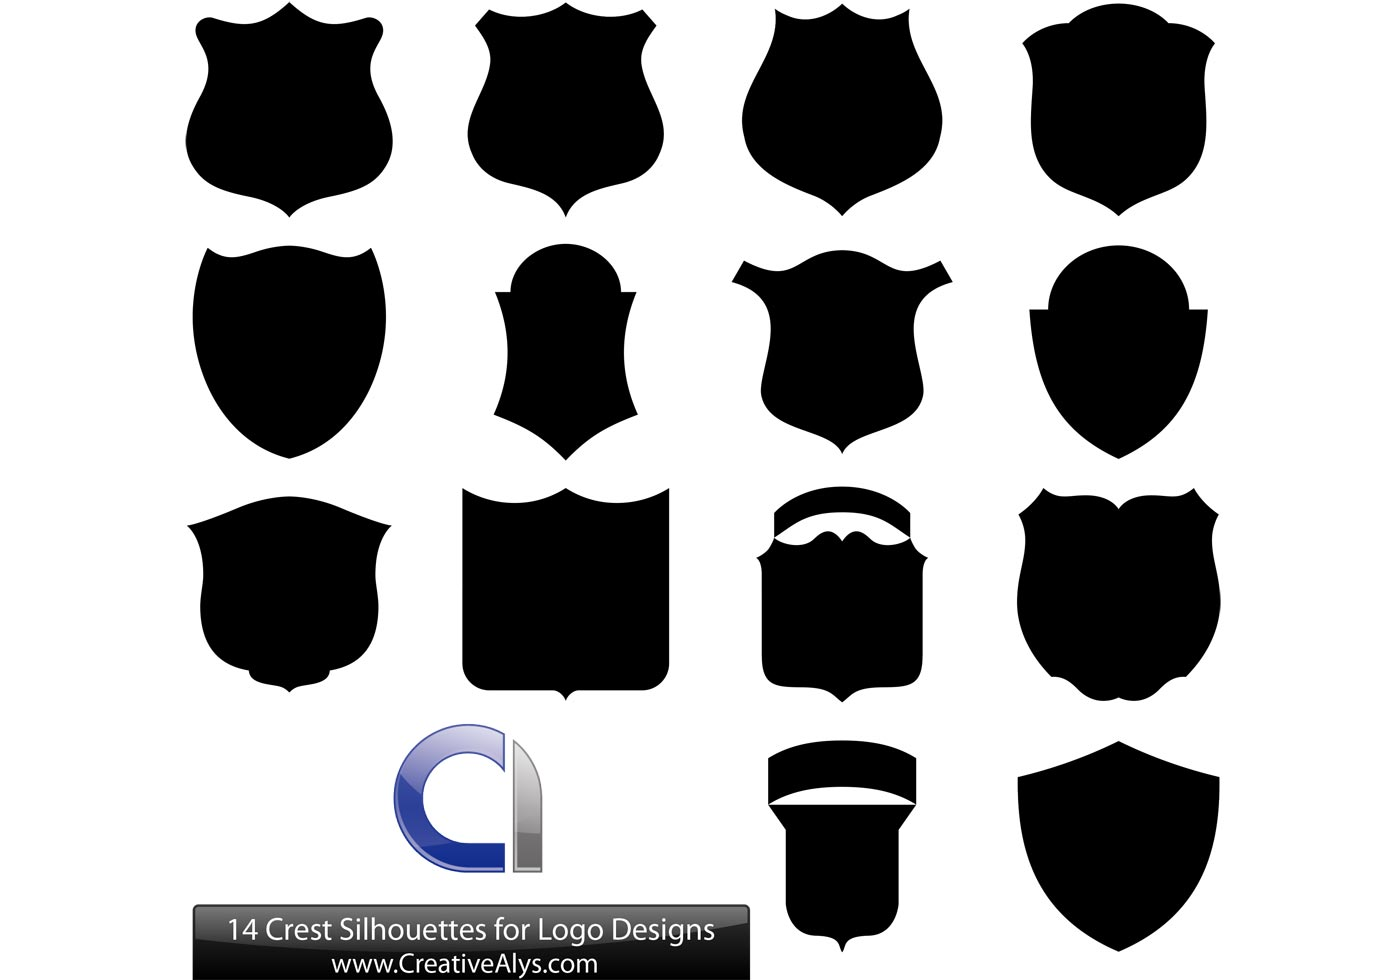 14 crest silhouettes for logo designs download free